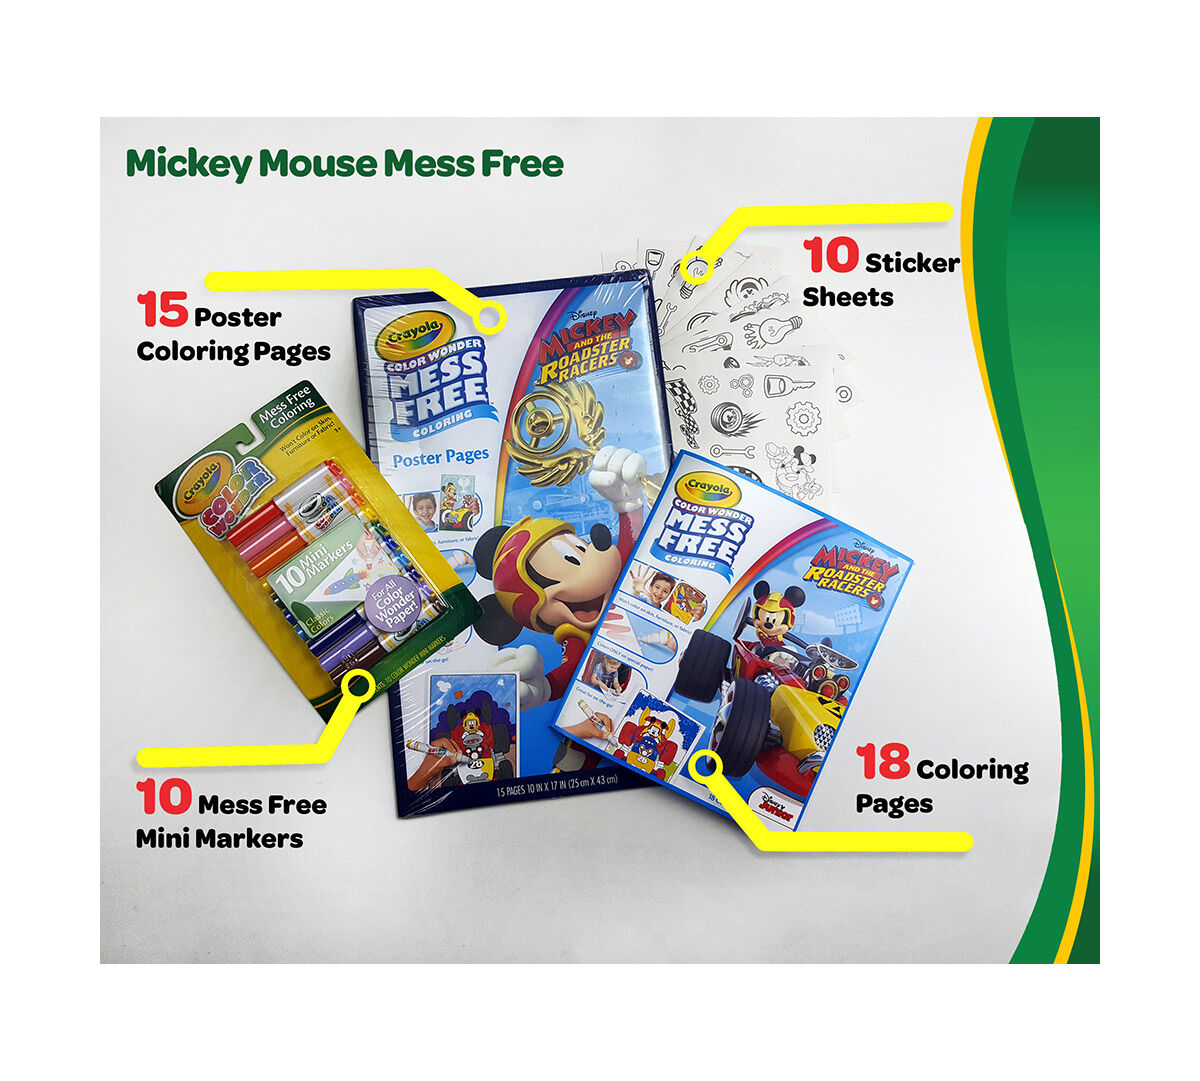 Crayola Mess Free Color Wonder Variety Bundle Posters Coloring 75 2590 Ecom Mickey Set